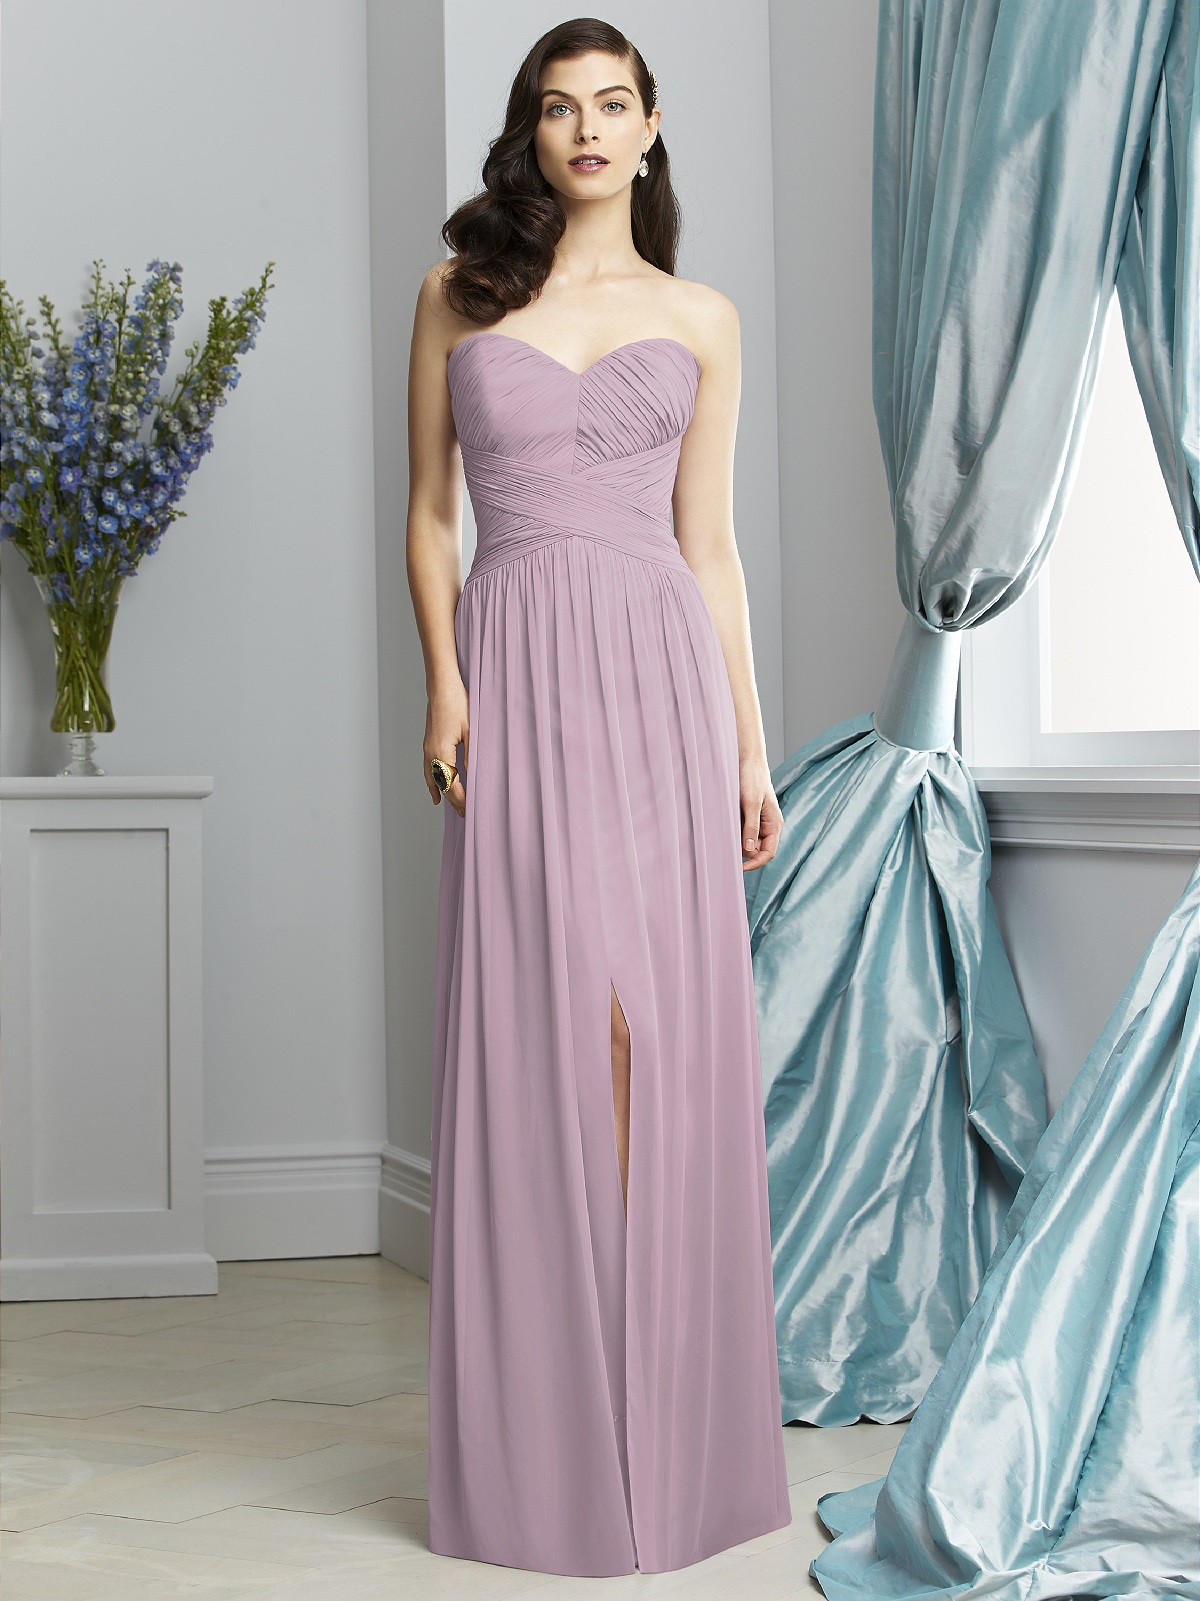 Dessy bridesmaid dressesdessy dresses 2931dessy collectionthe dessy bridesmaid dresses dessy 2931 loading zoom ombrellifo Gallery